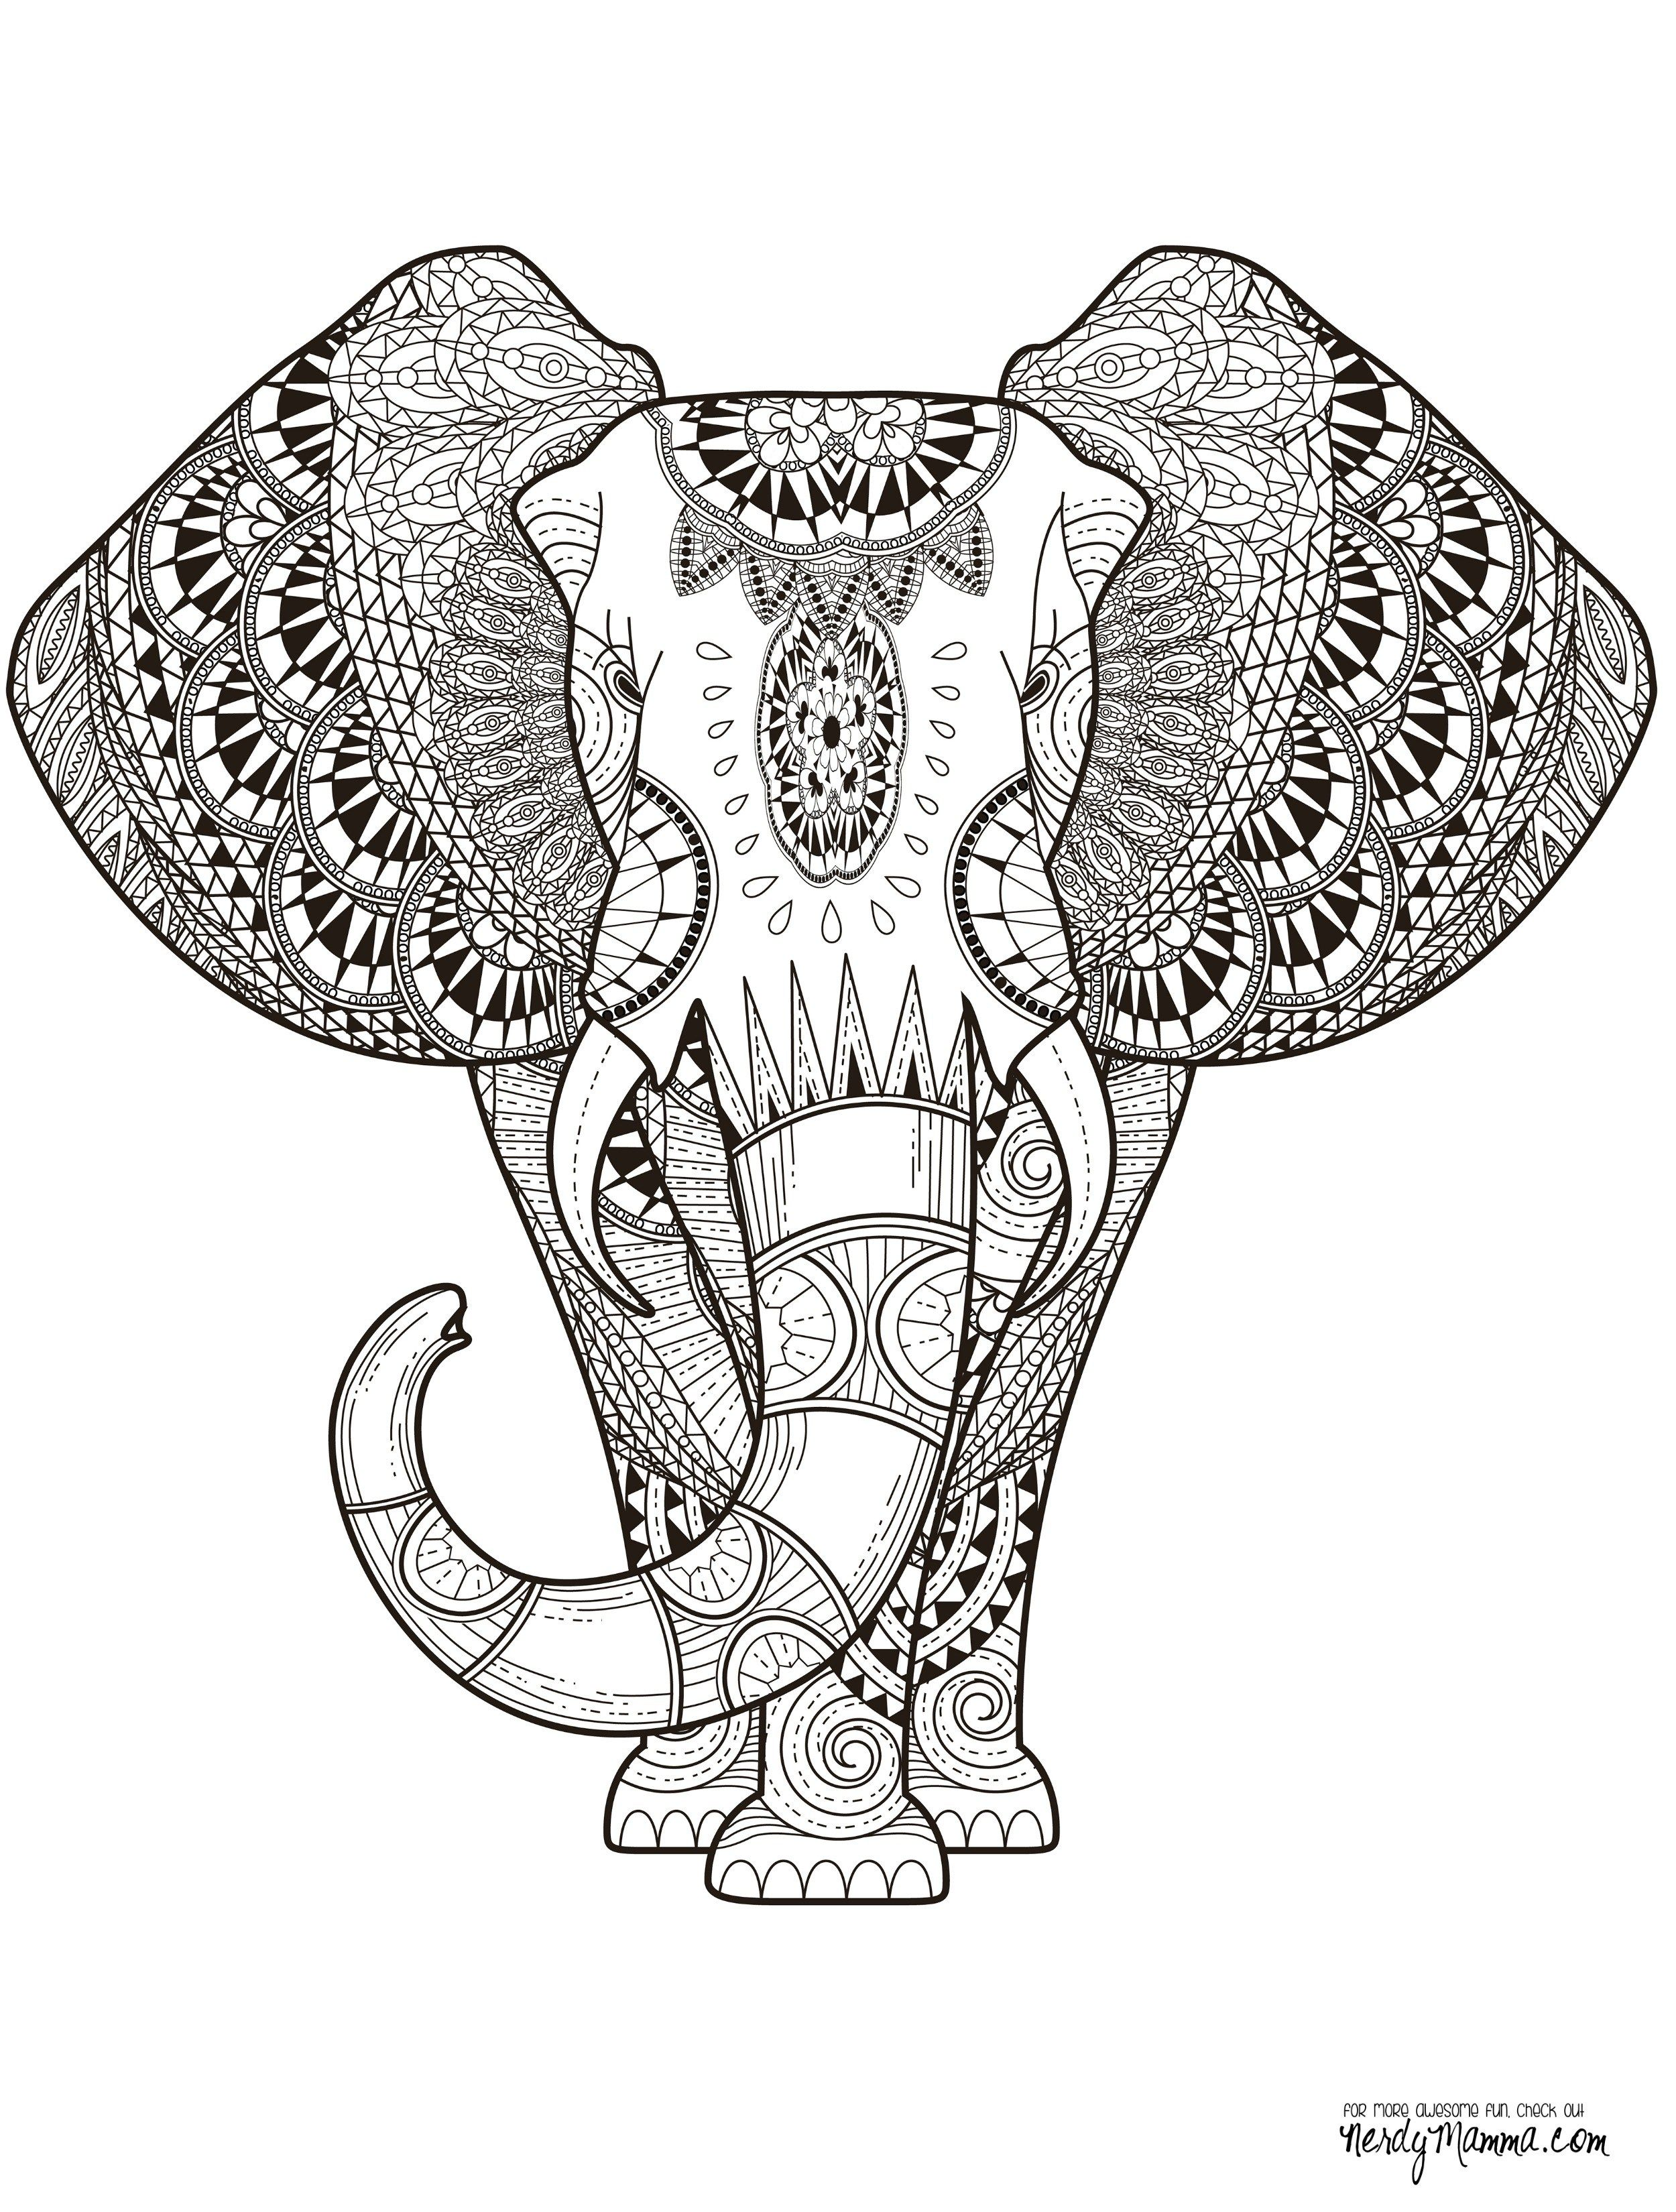 Elephant Abstract Doodle Zentangle Paisley Coloring Pages Colouring Adult  Detailed Advanced Printable Kleuren Voor Volwassenen Coloriage Pour Adulte  ...